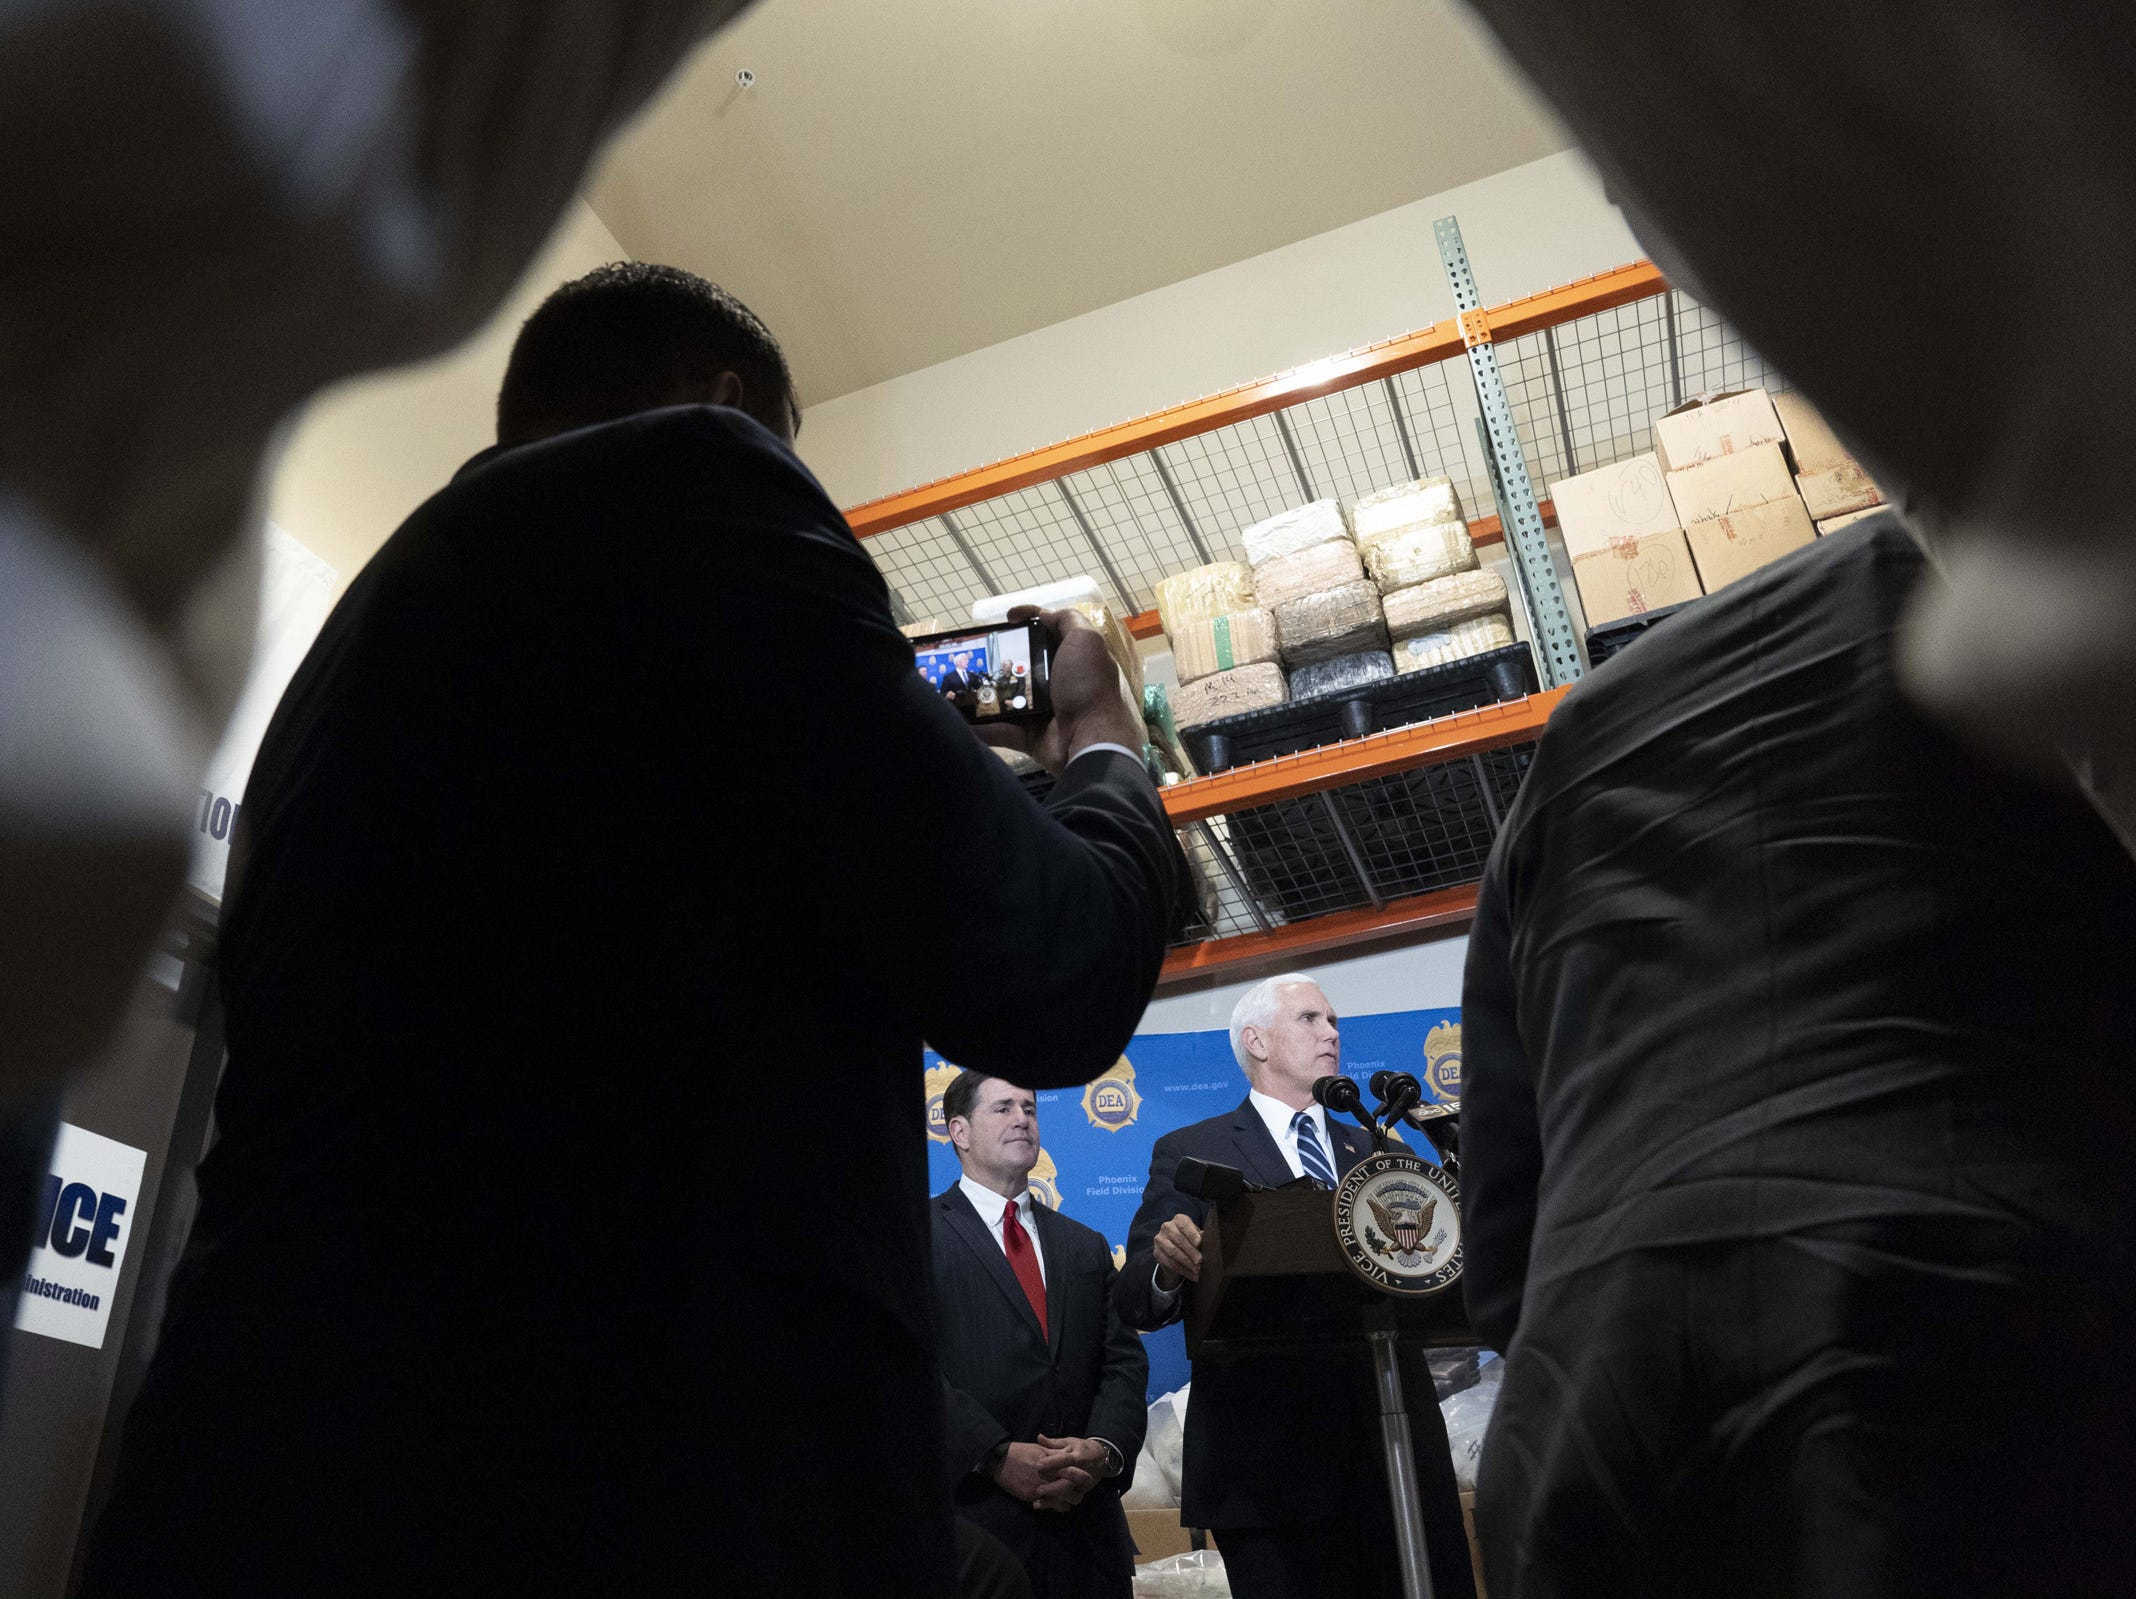 Vice President Mike Pence and Gov. Doug Ducey watch as DEA agents show stored drugs, weapons and cash at a facility in the Phoenix area during a tour on March 5, 2019.